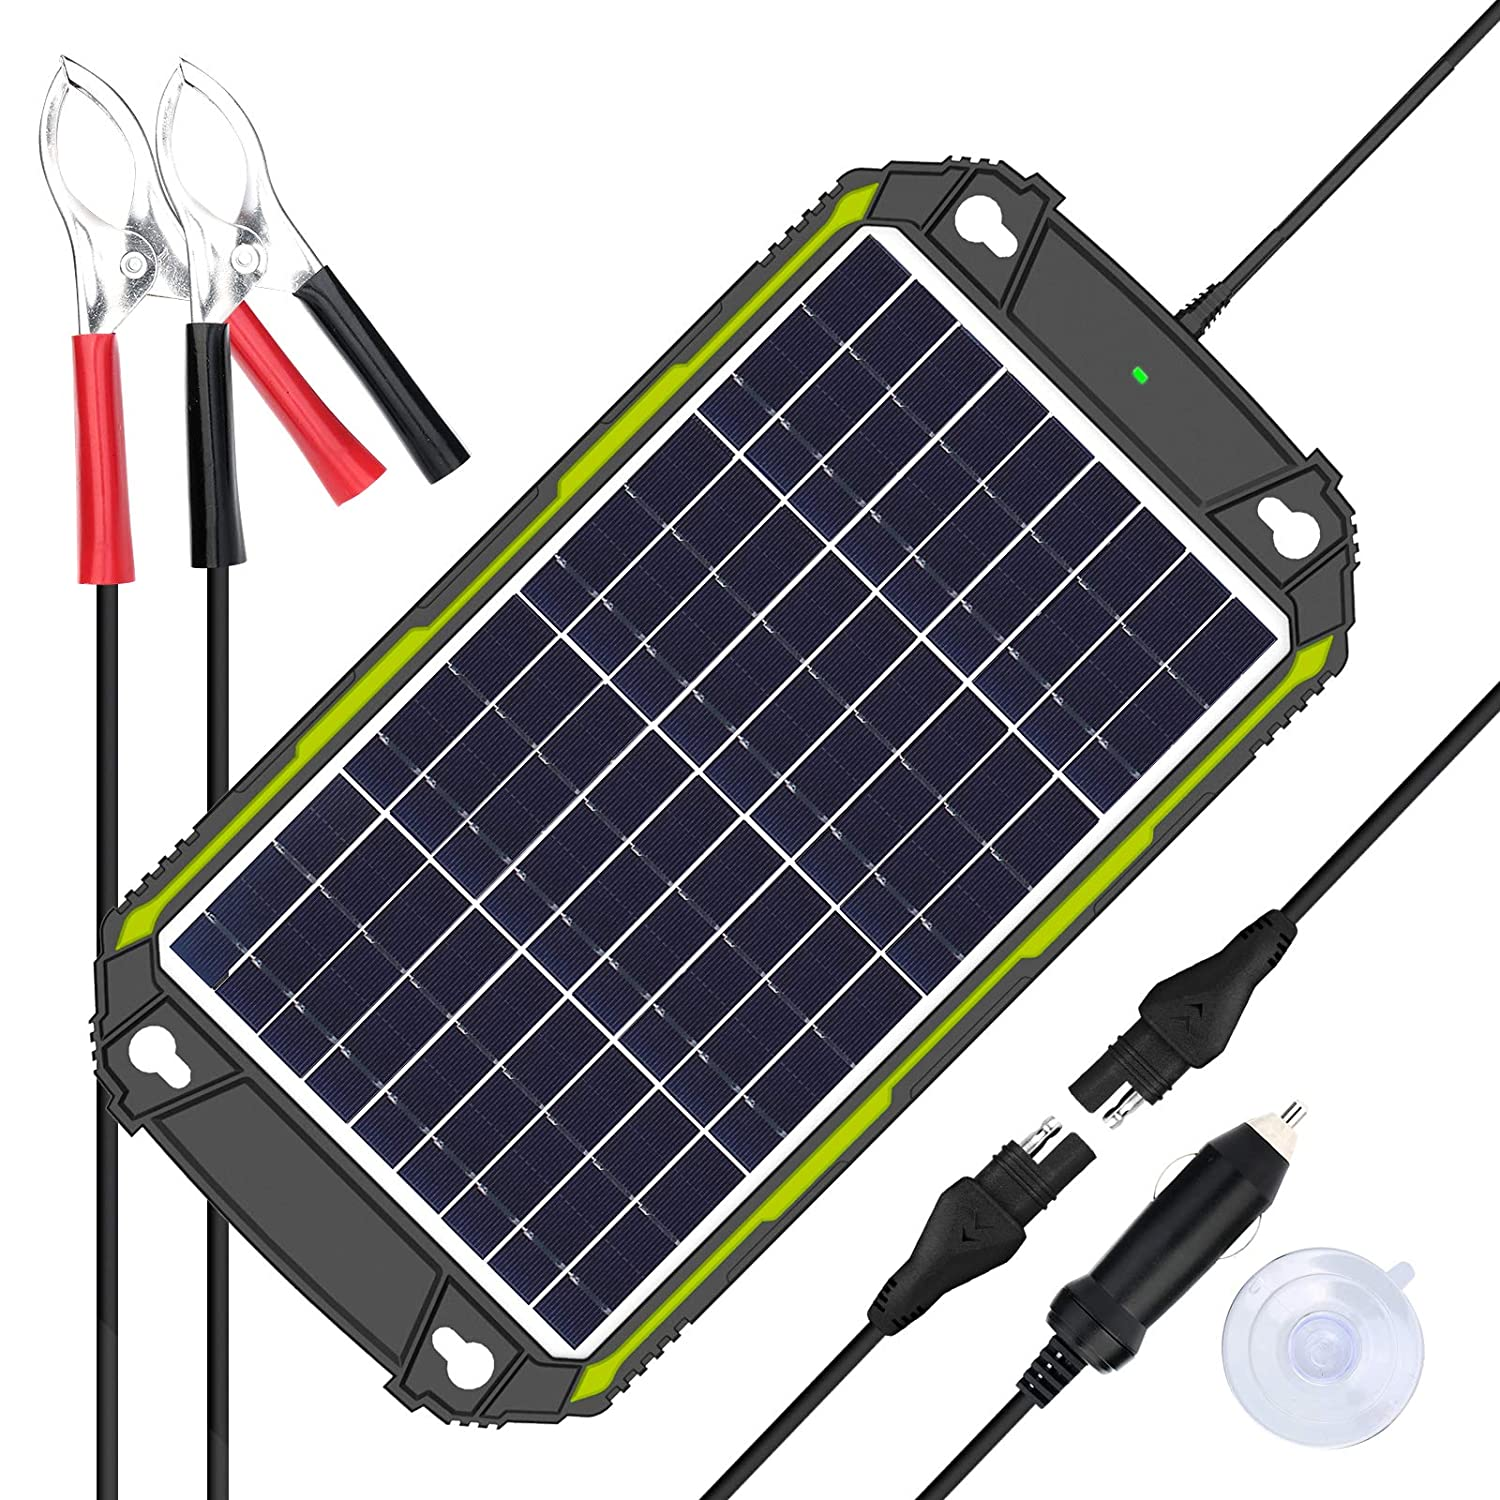 Sun Energise Waterproof 12V 10W Solar Battery Charger